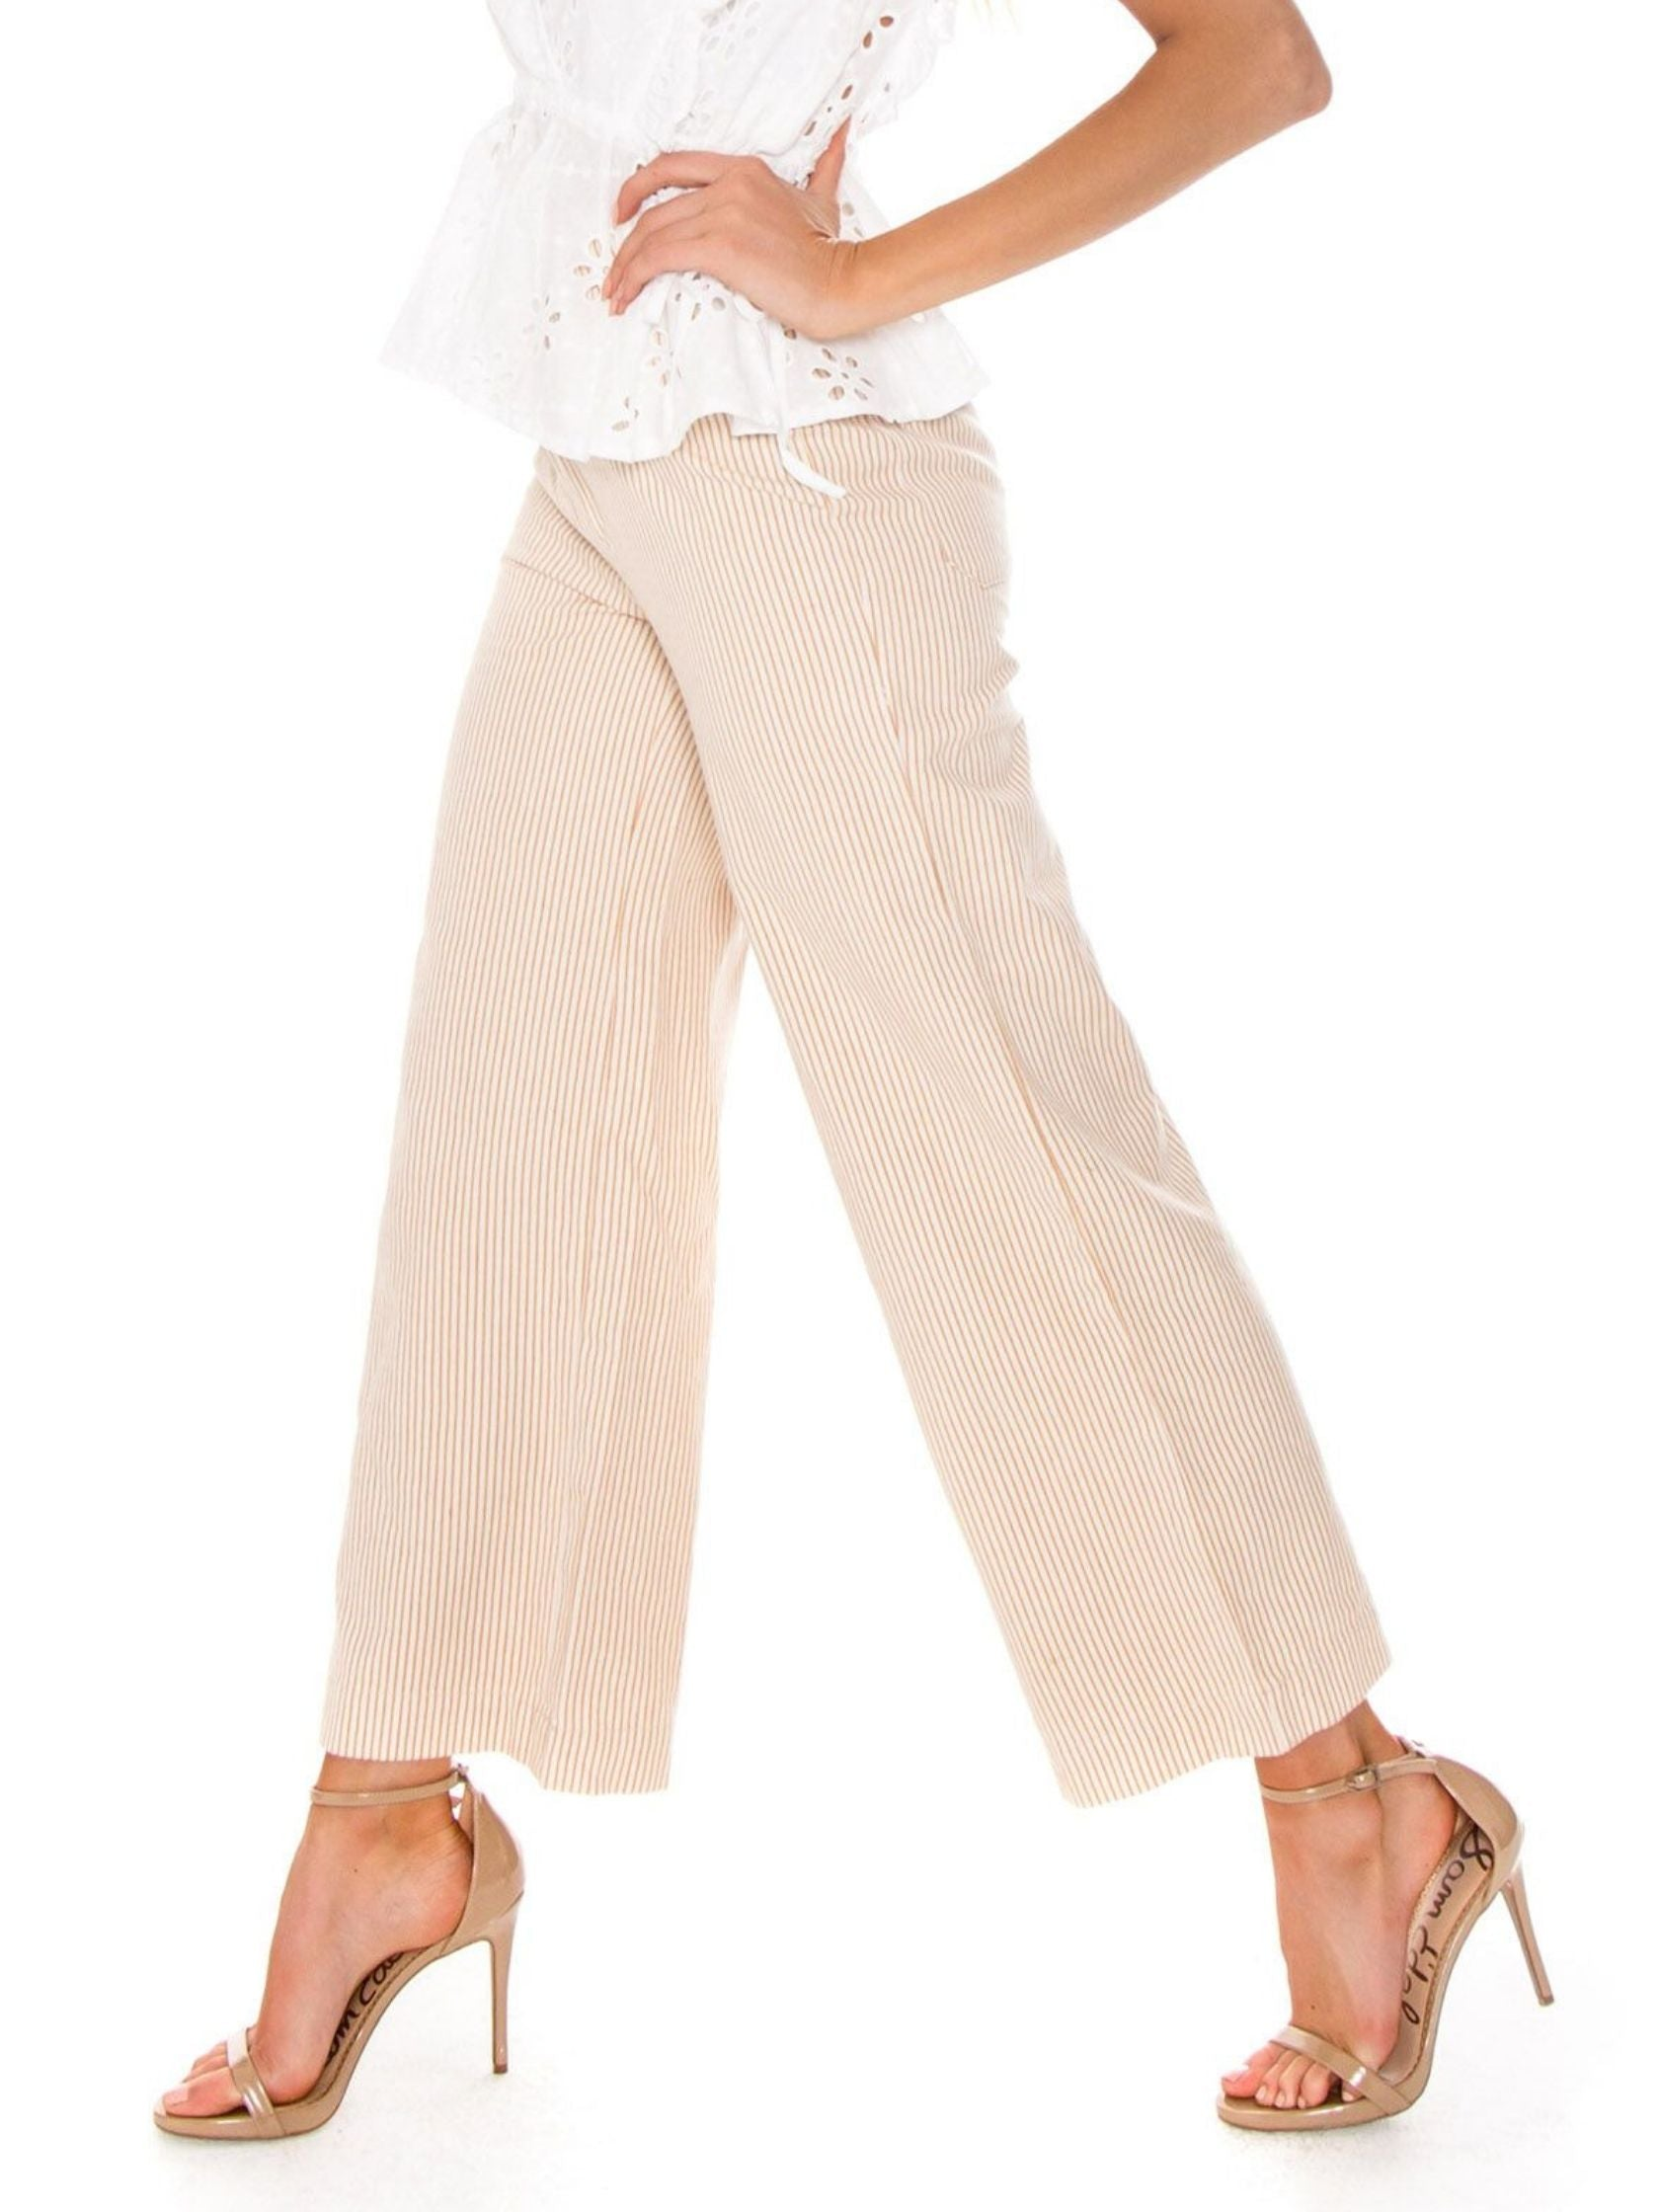 Women wearing a pants rental from ROLLAS called Old Mate Pant